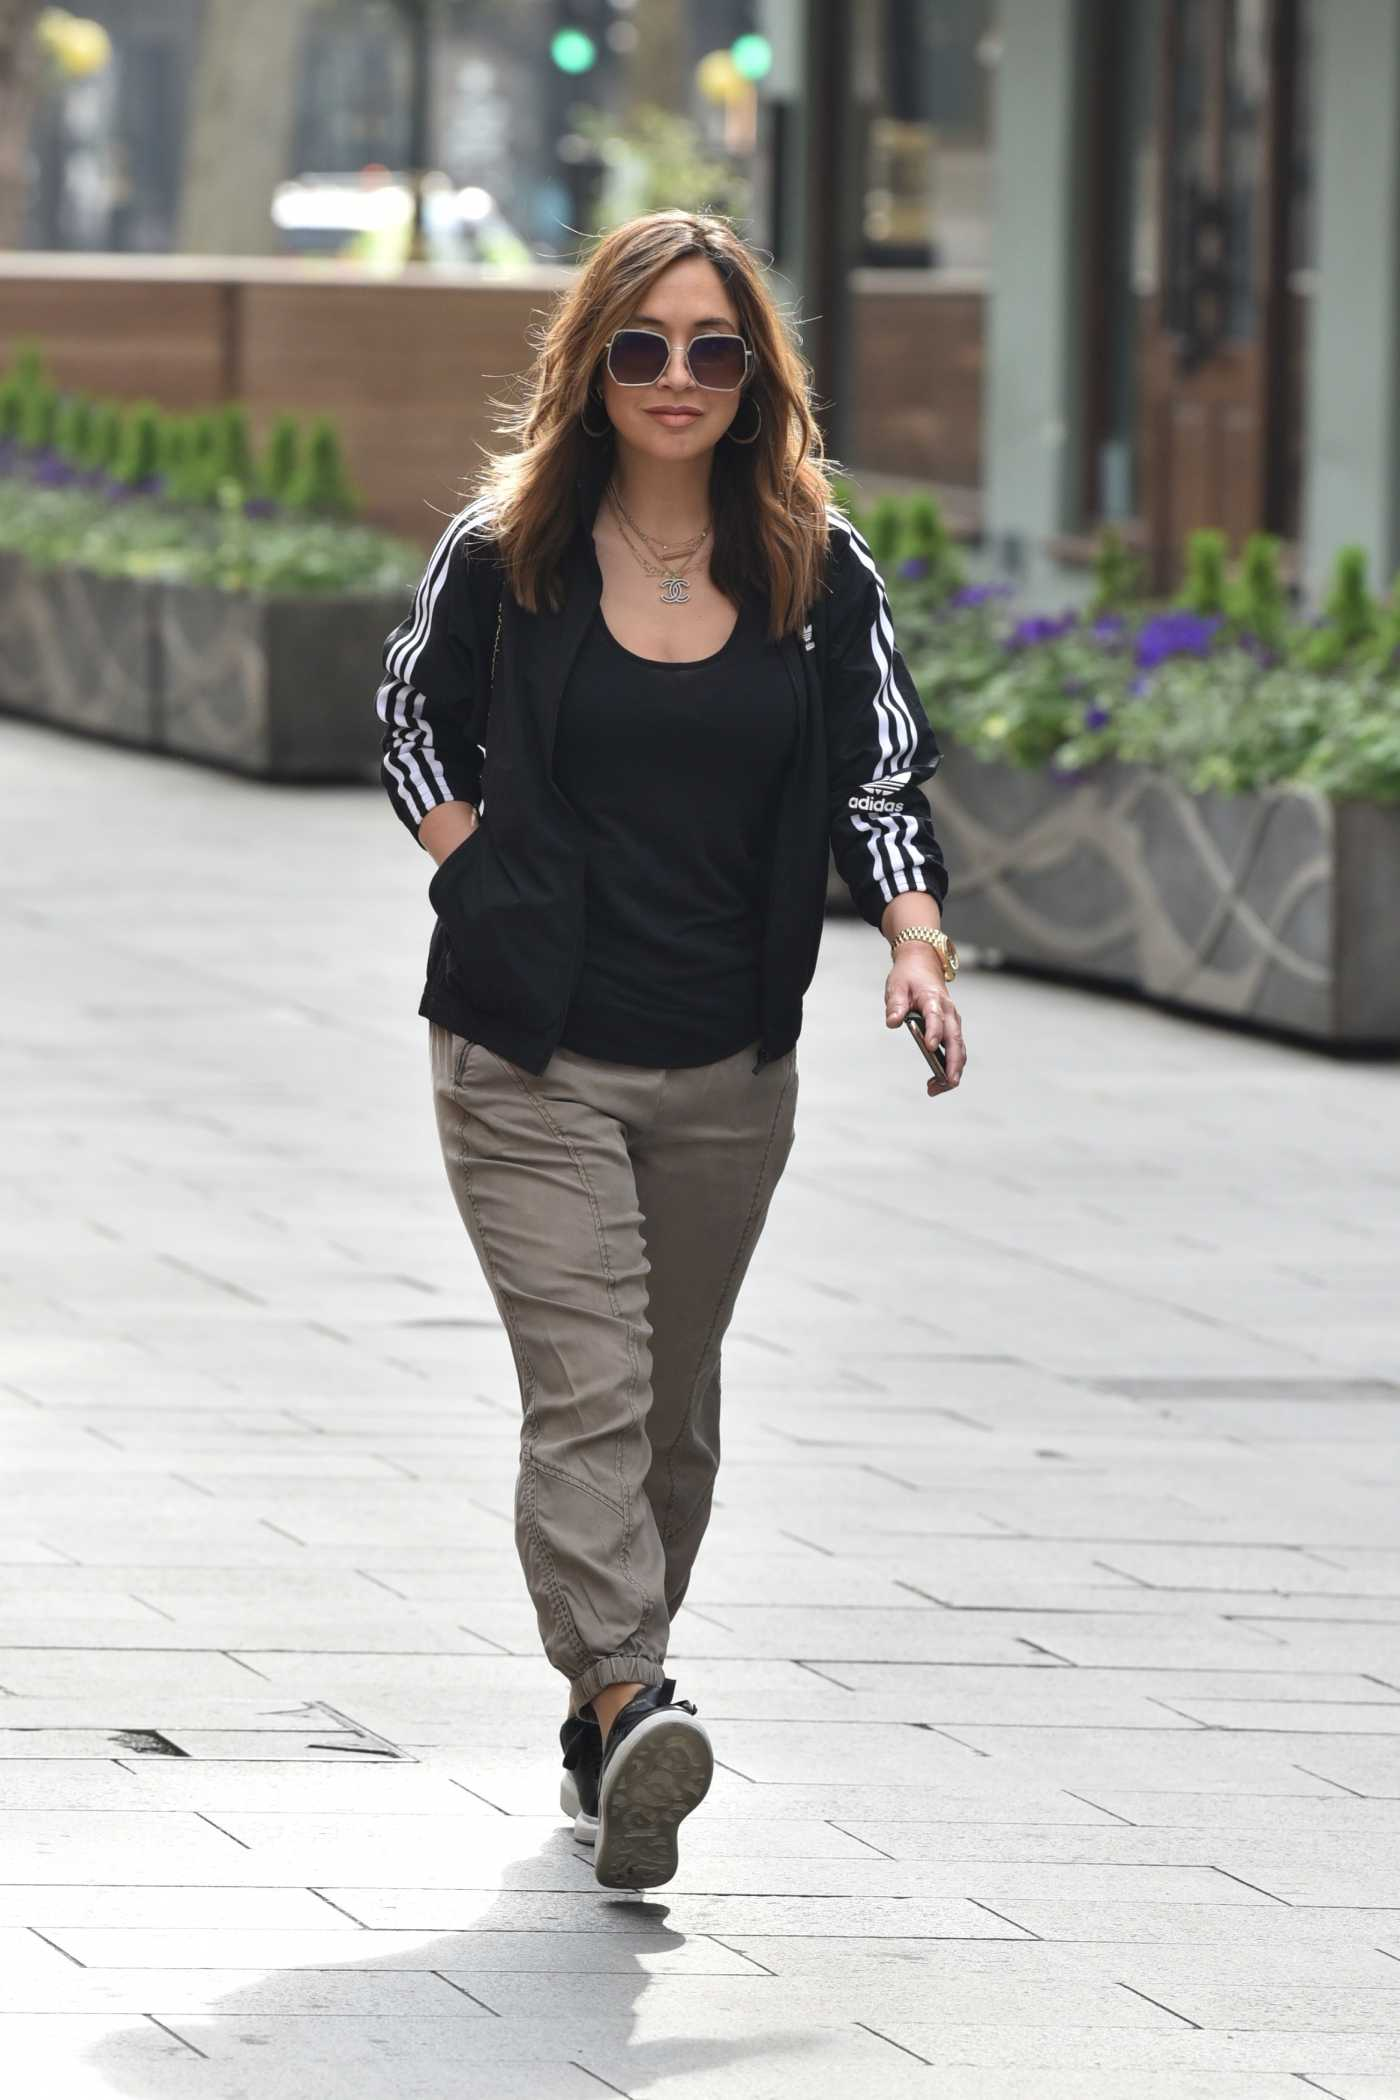 Myleene Klass in a Black Adidas Tracksuit Arrives at the Global Media Entertainment Group in London 04/08/2020